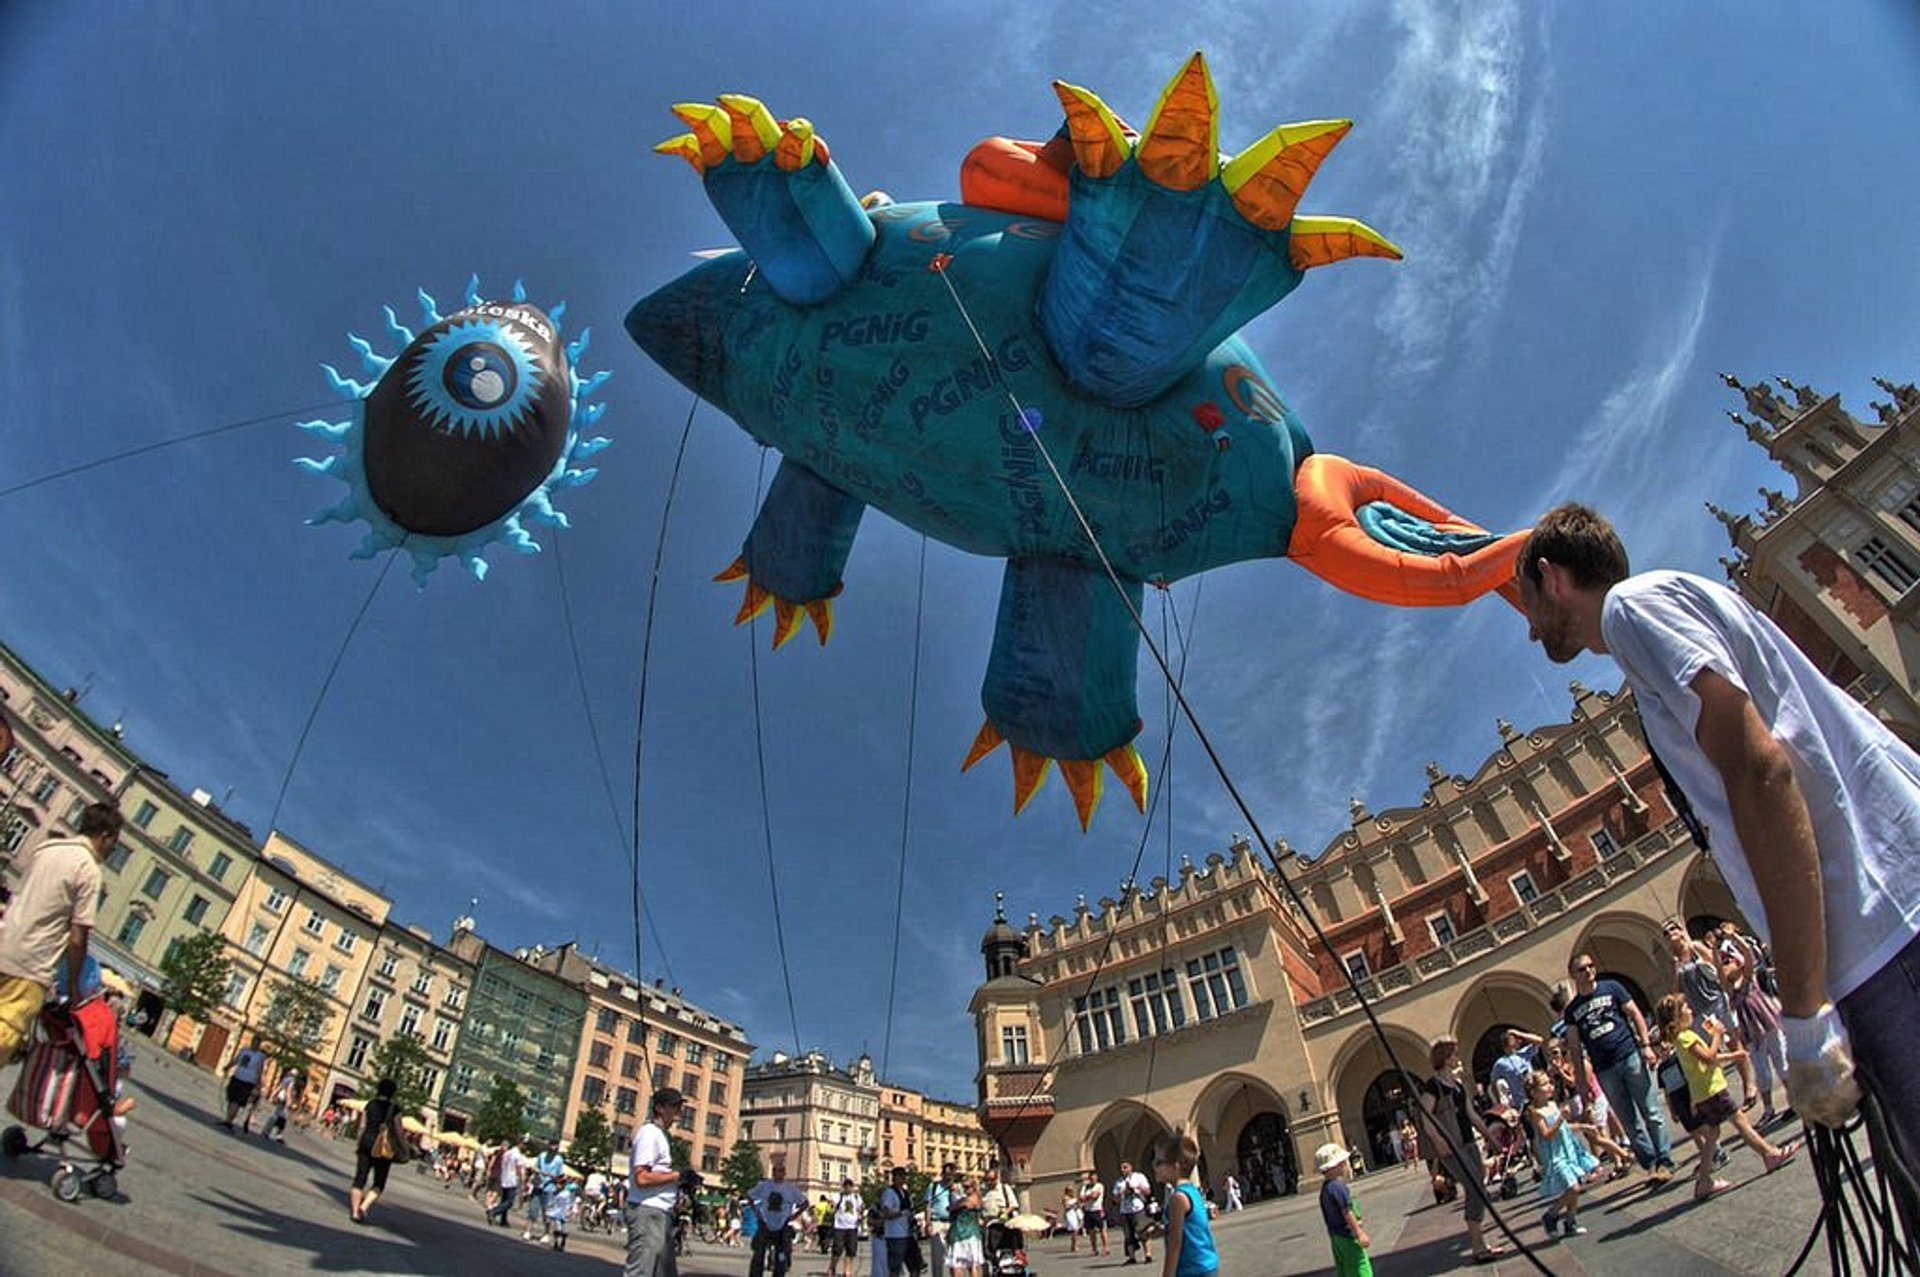 Great Dragon Parade in Krakow 2020 - Best Time